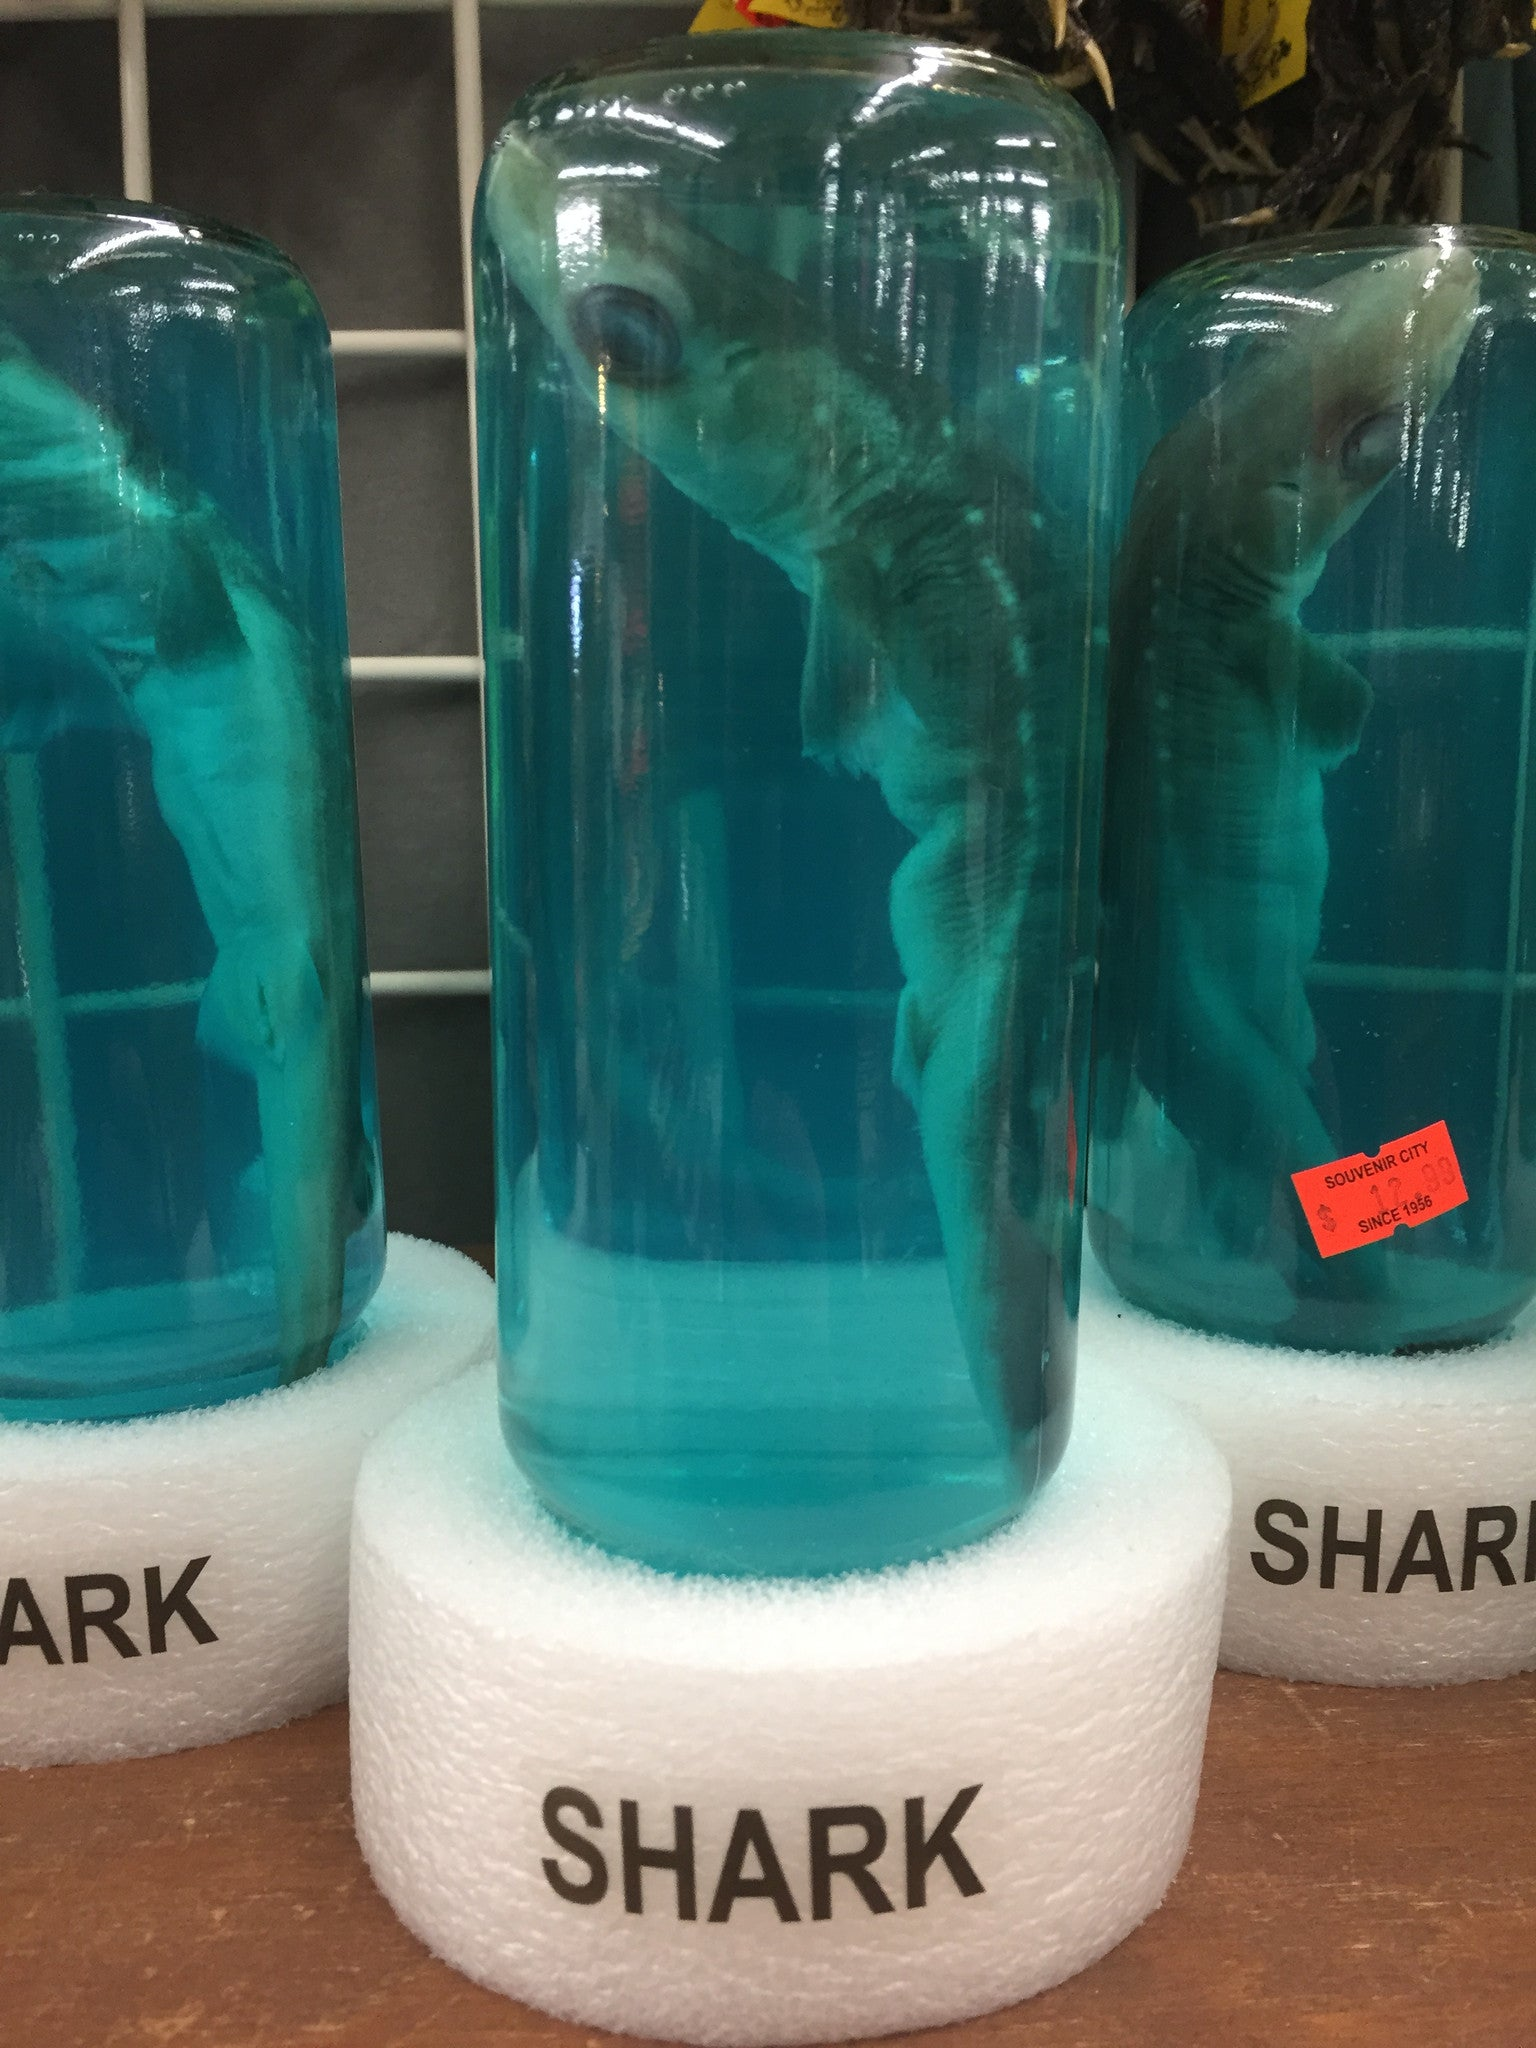 shark in a bottle souvenir city gulf shores